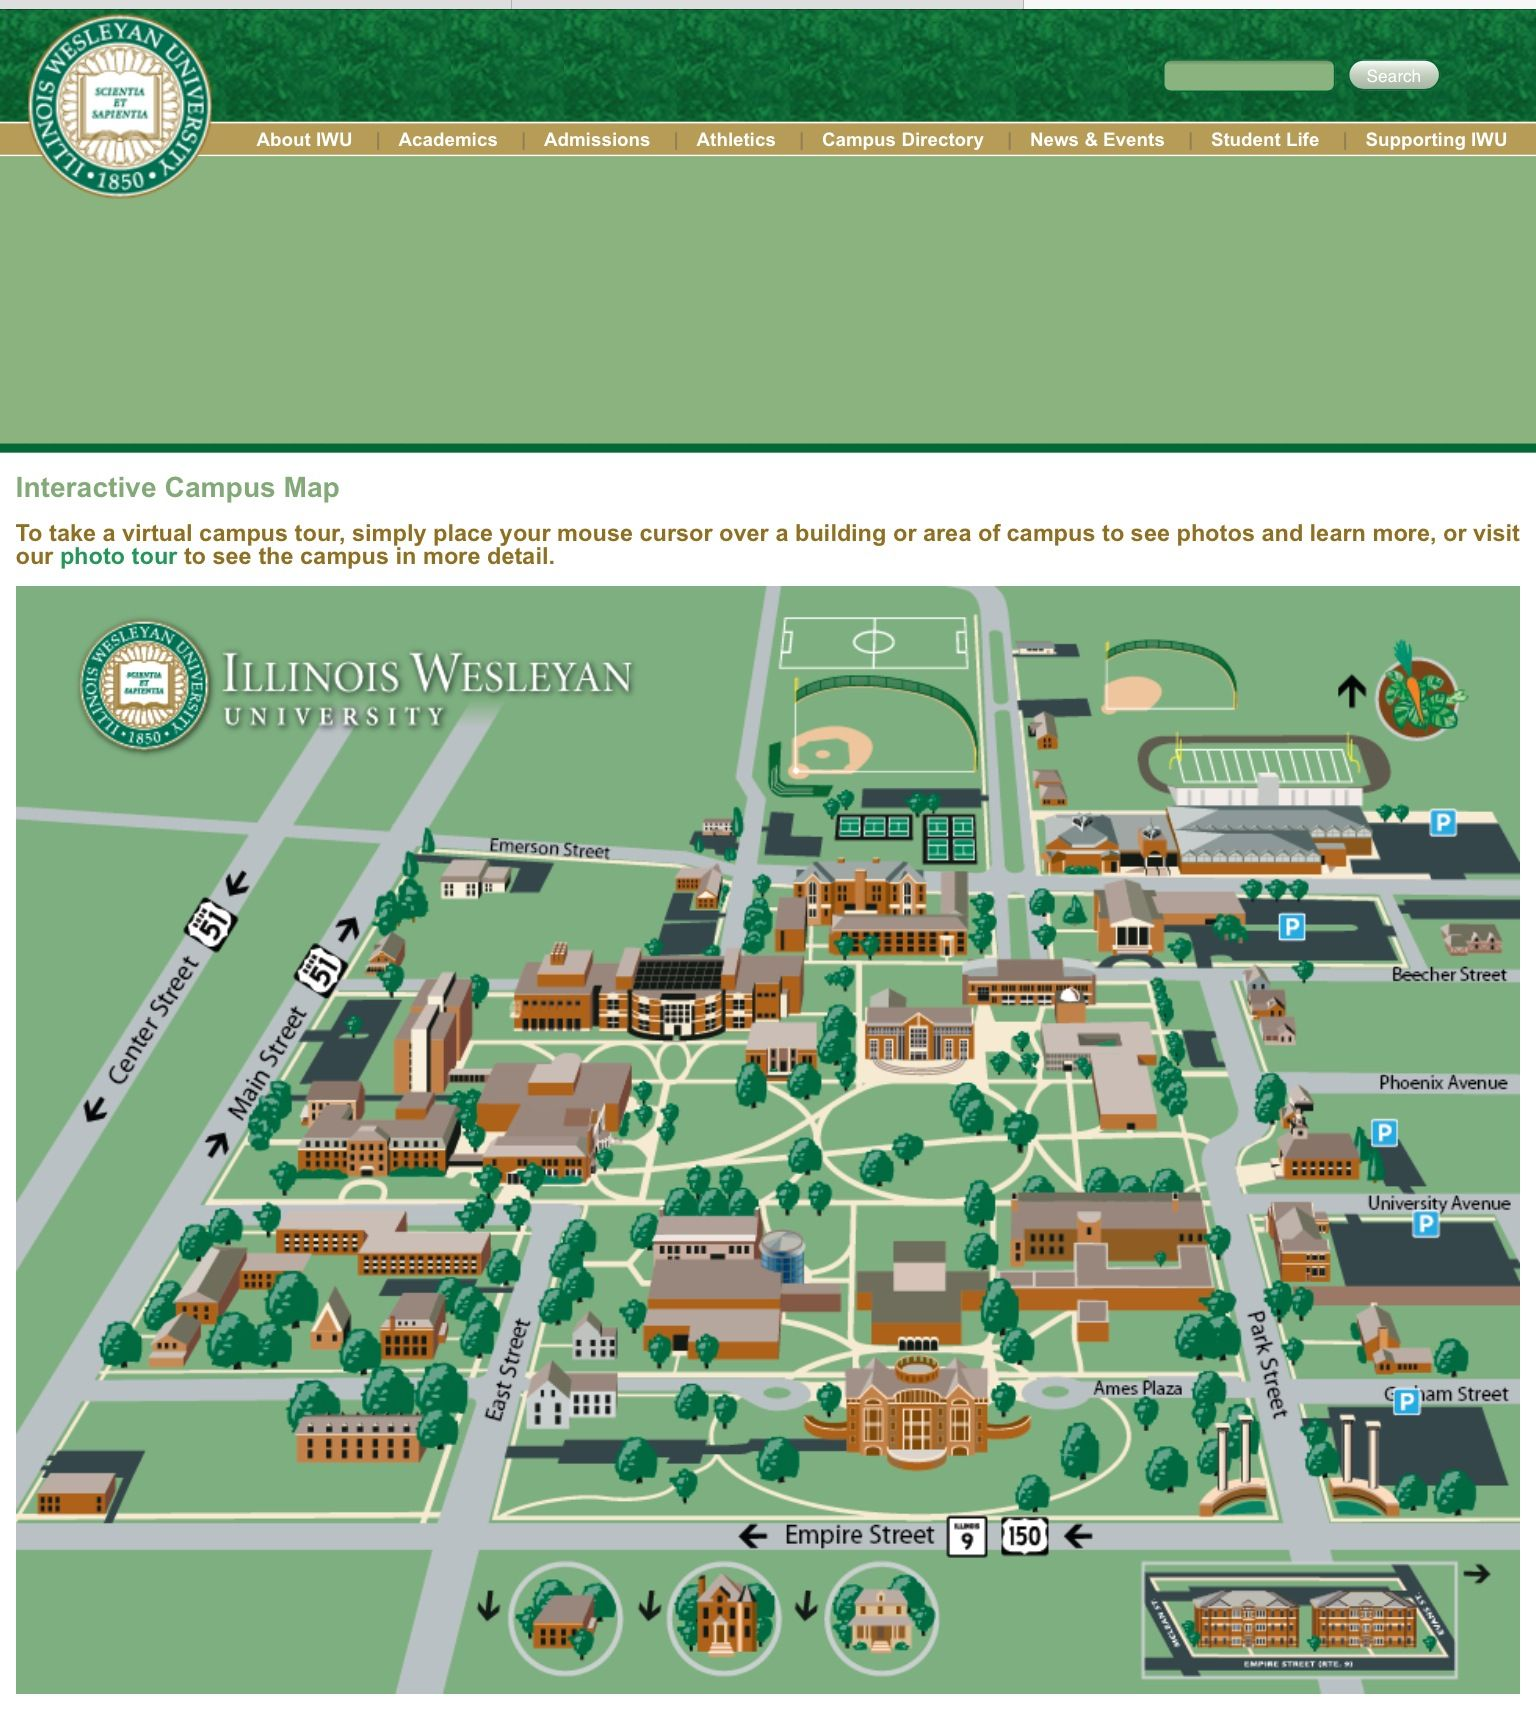 Millikin University Campus Map.Iwu Campus Map Illinois Wesleyan University Pinterest Campus